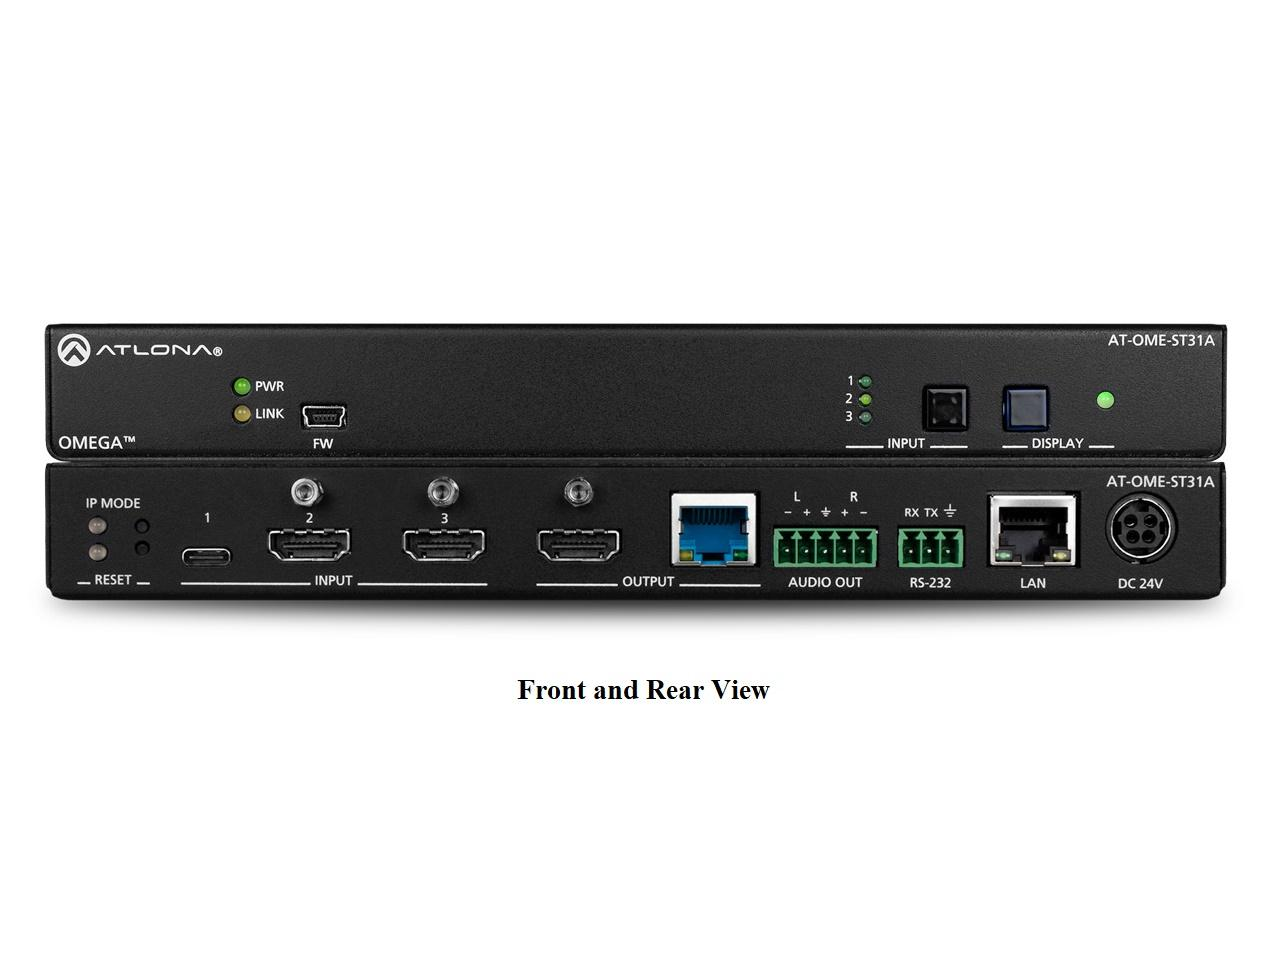 Atlona AT-OME-ST31A 3x1 4K/UHD HDBaseT Switcher with HDMI/USB-C and POE (Audio De-Embedding)